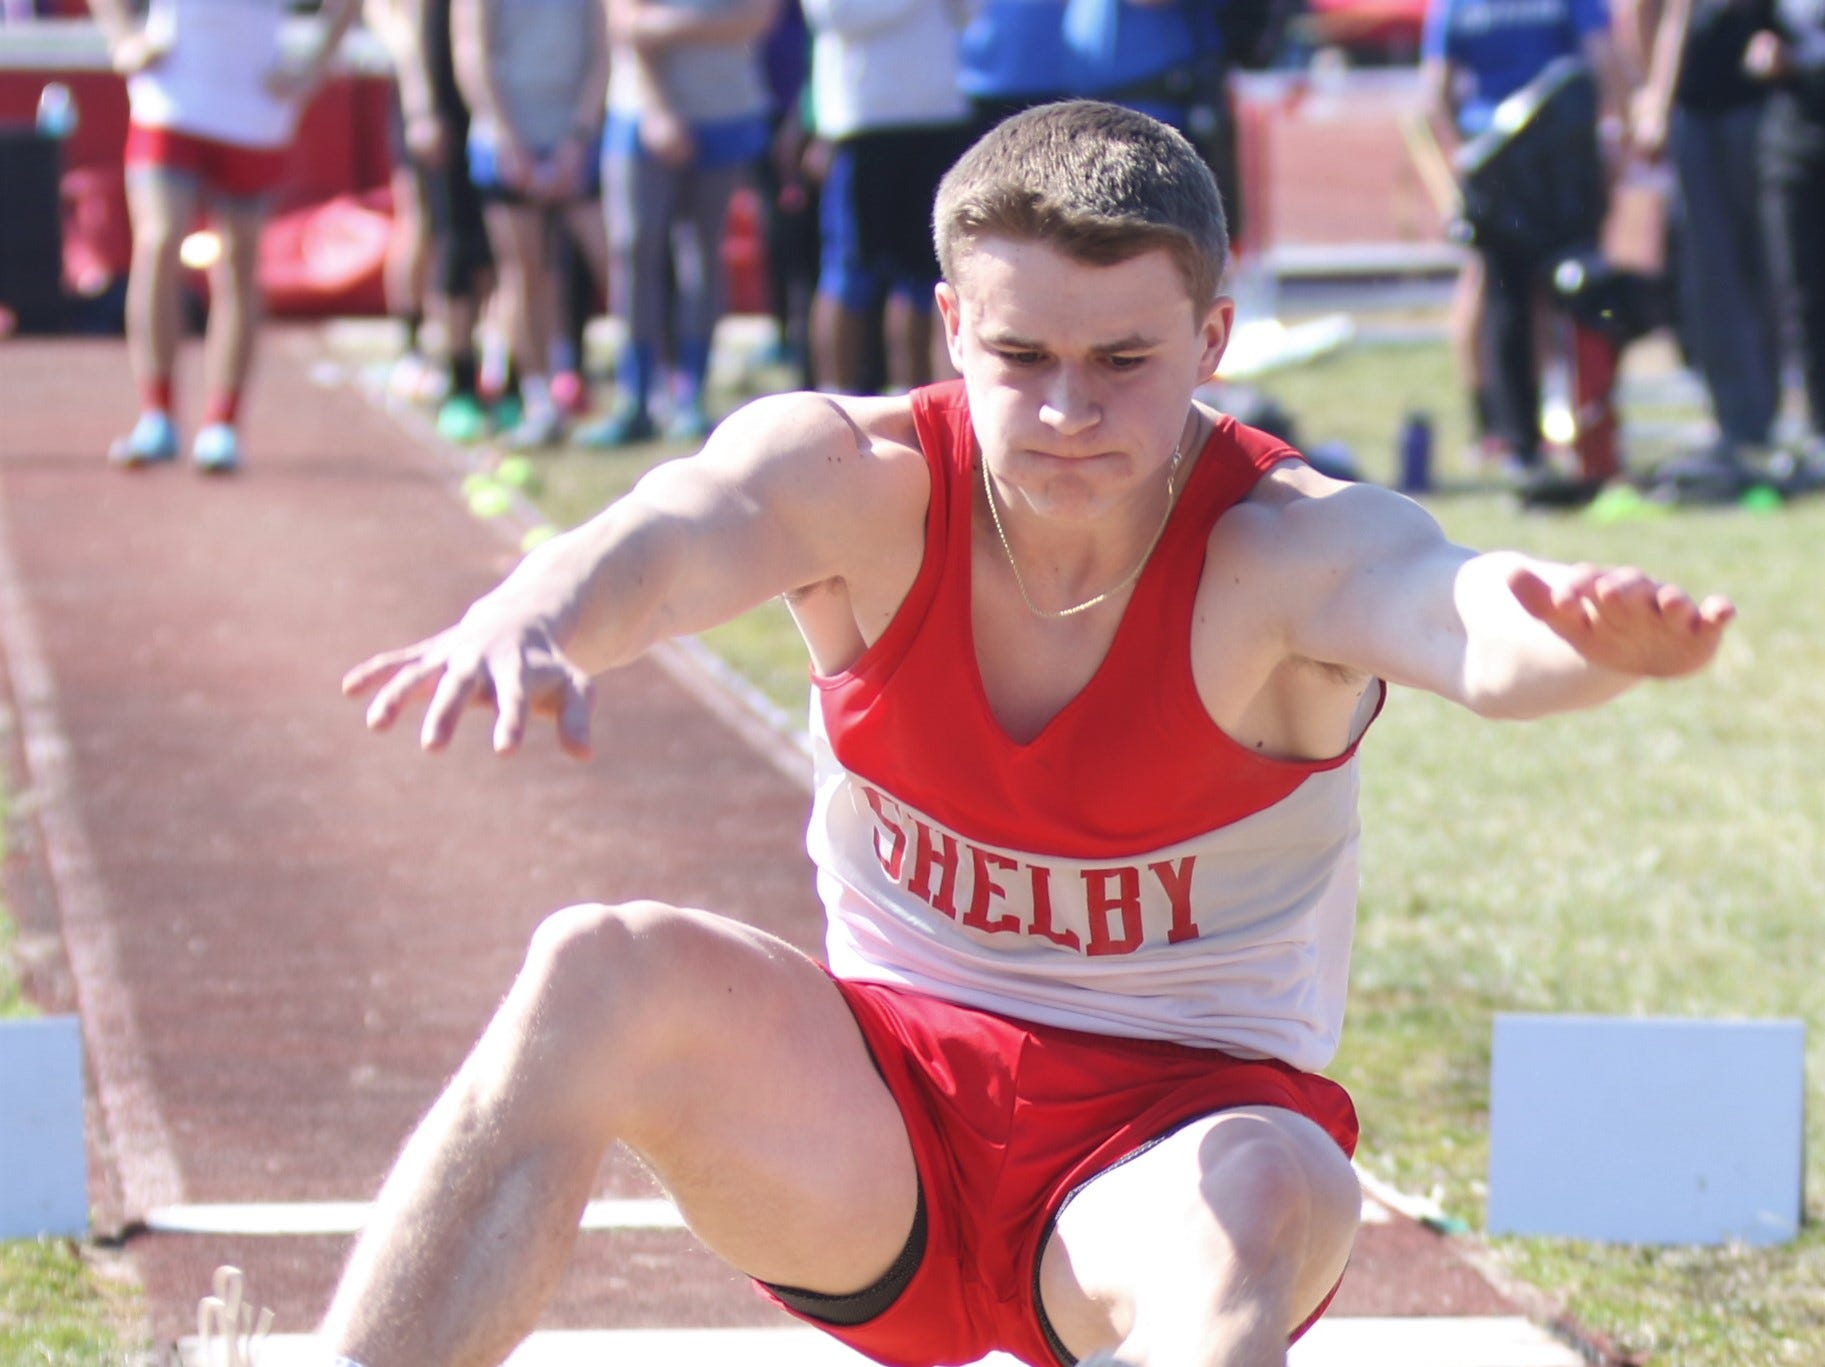 Shelby's Caleb Henkel popped off three 20-plus-foot jumps in the long jump competition during the Shelby High School Invite on Saturday afternoon.